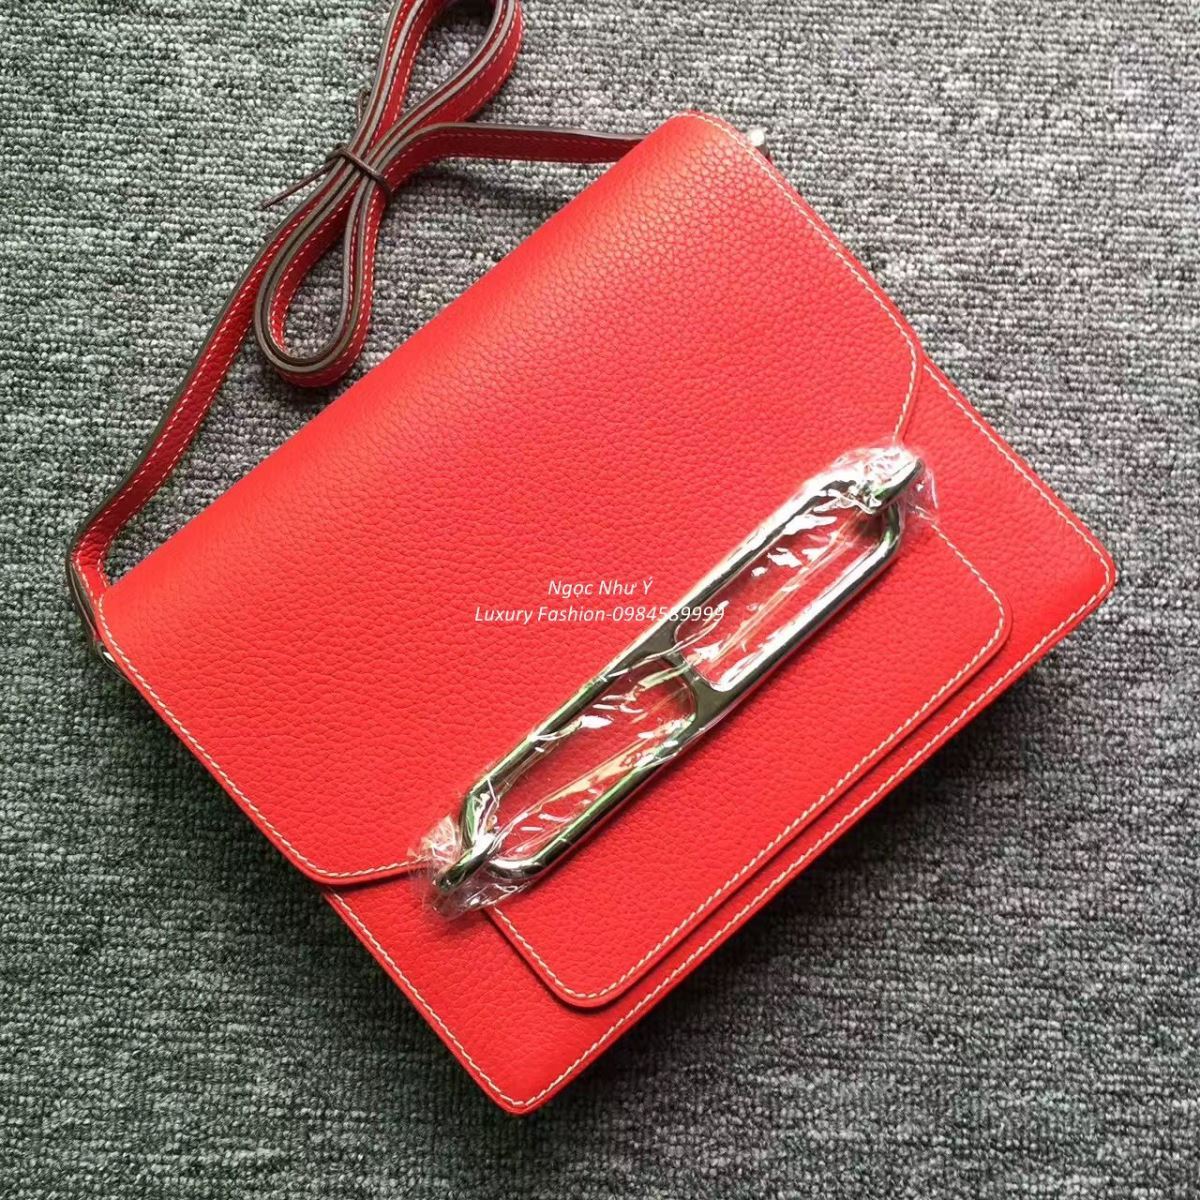 Hermes Roulis Mini 19 Togo Candy Red